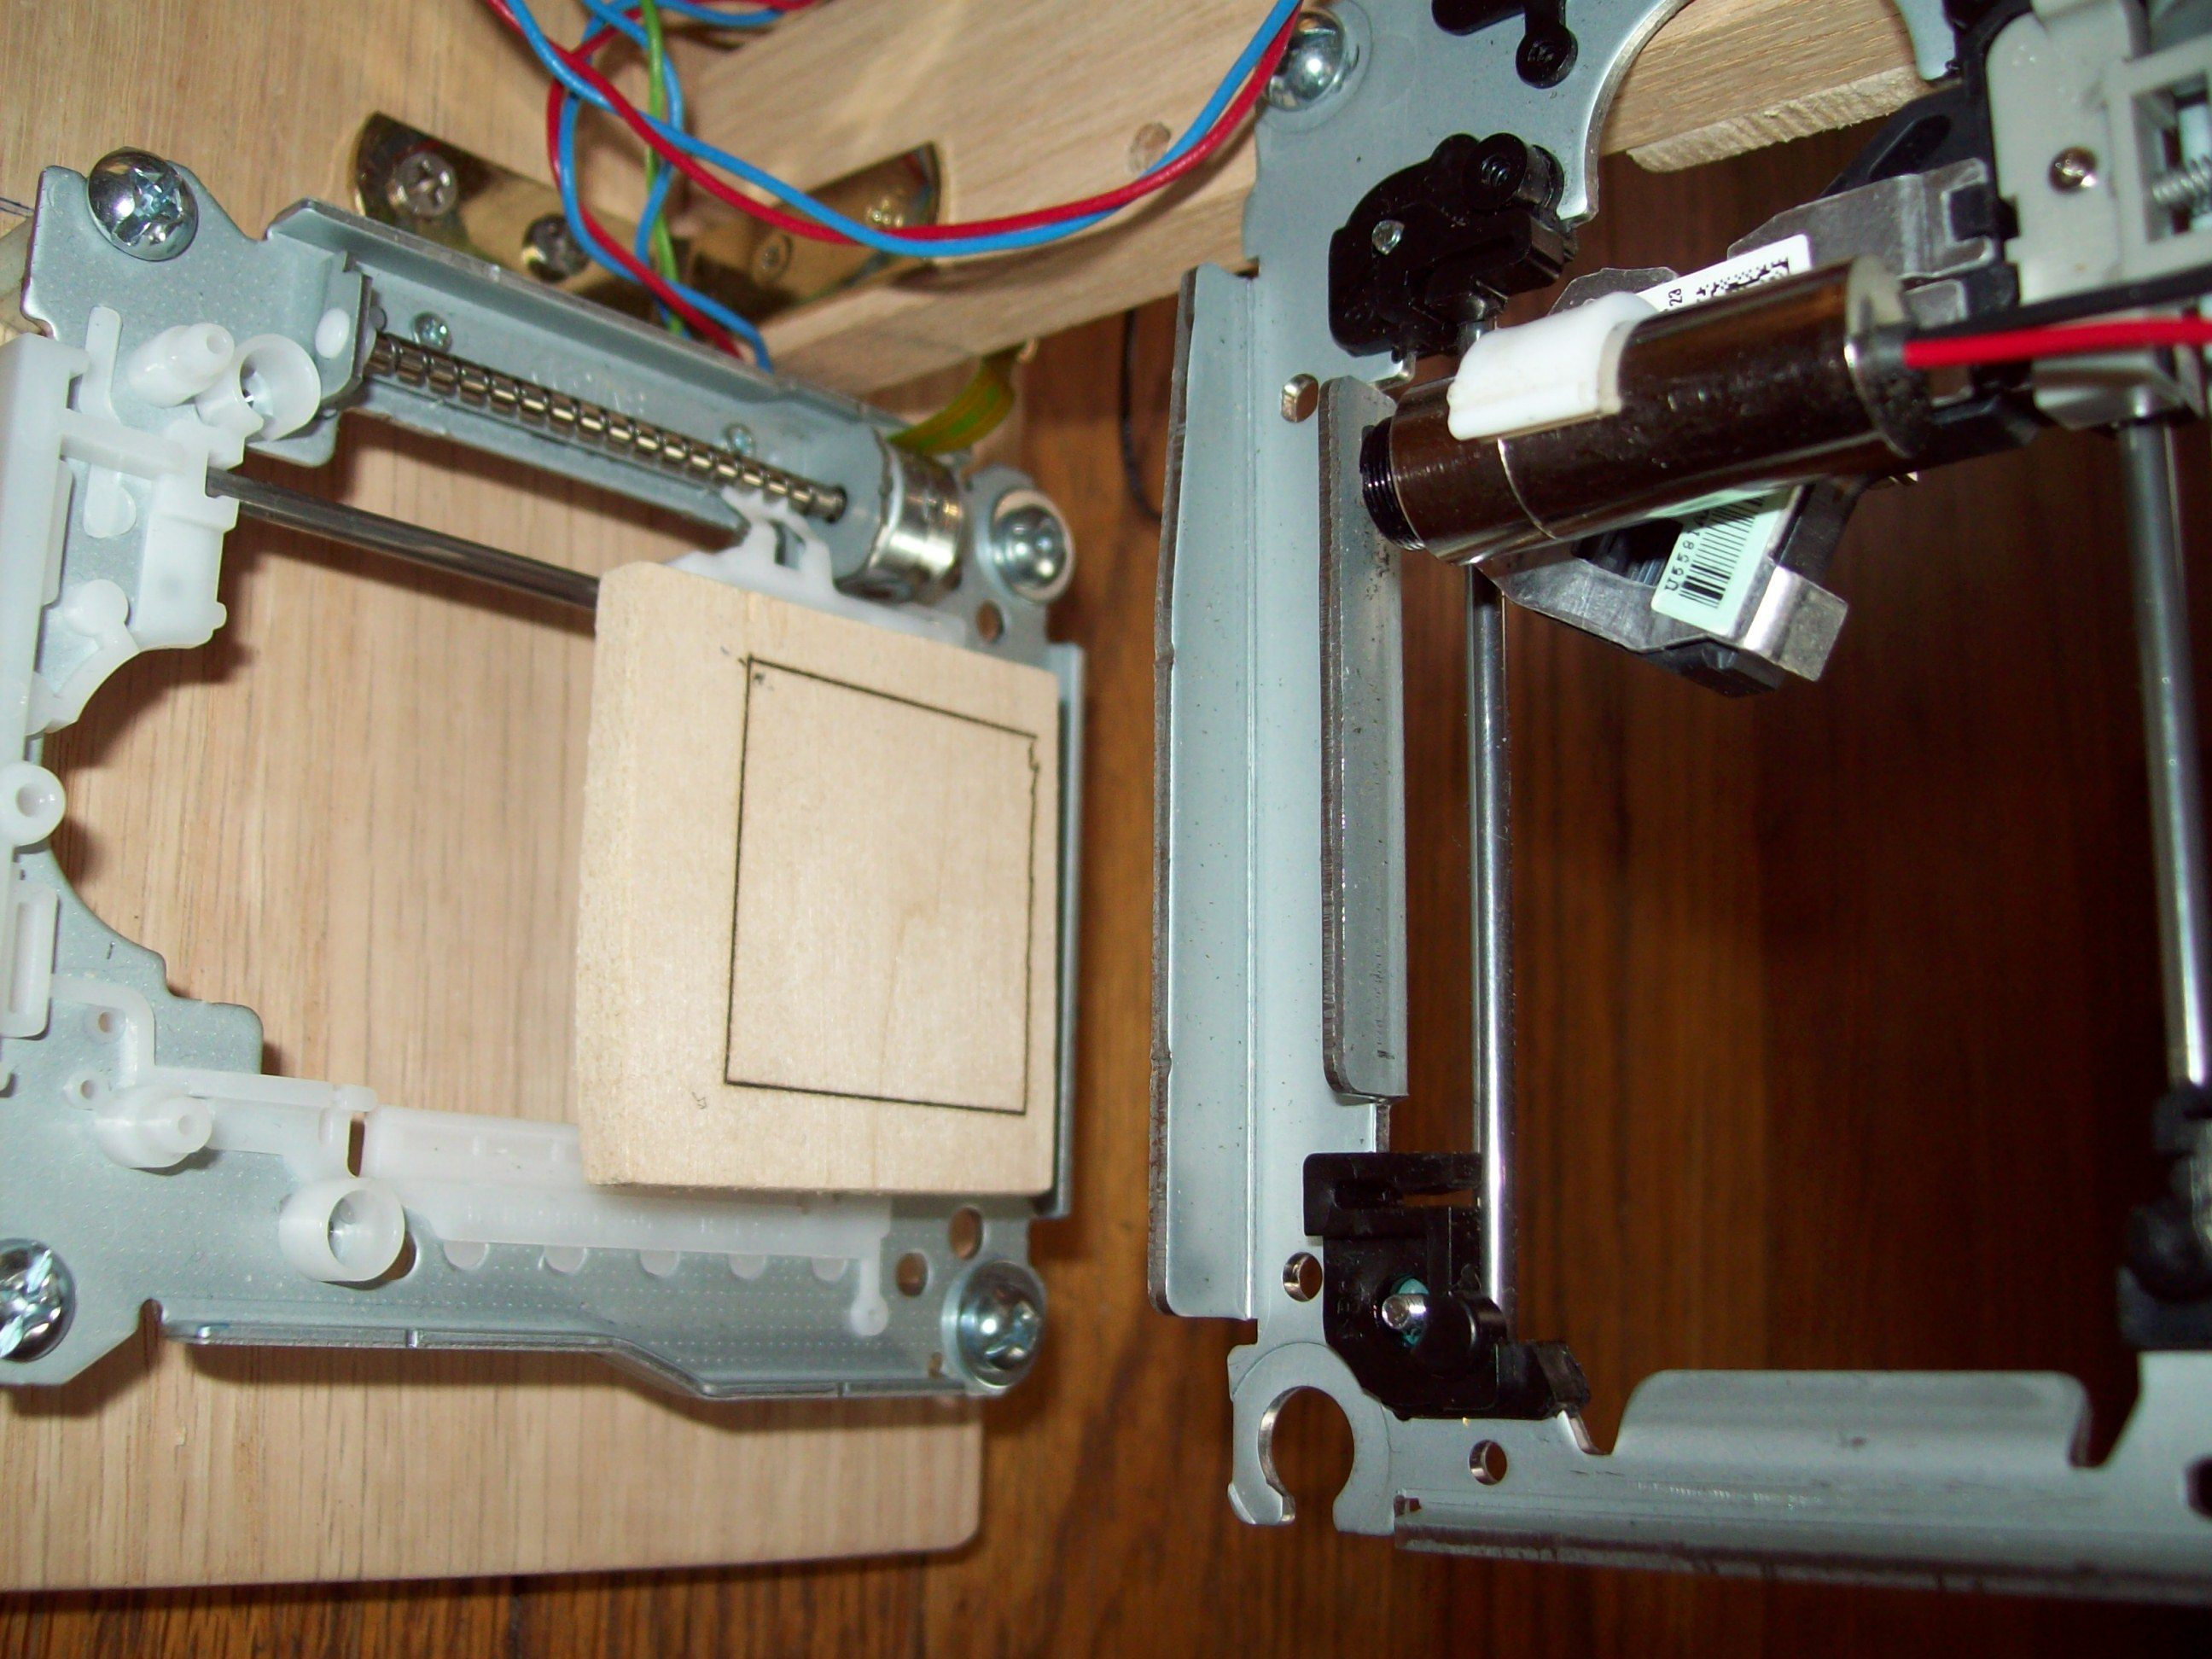 engravR: Build a Pi-Powered Laser Engraver